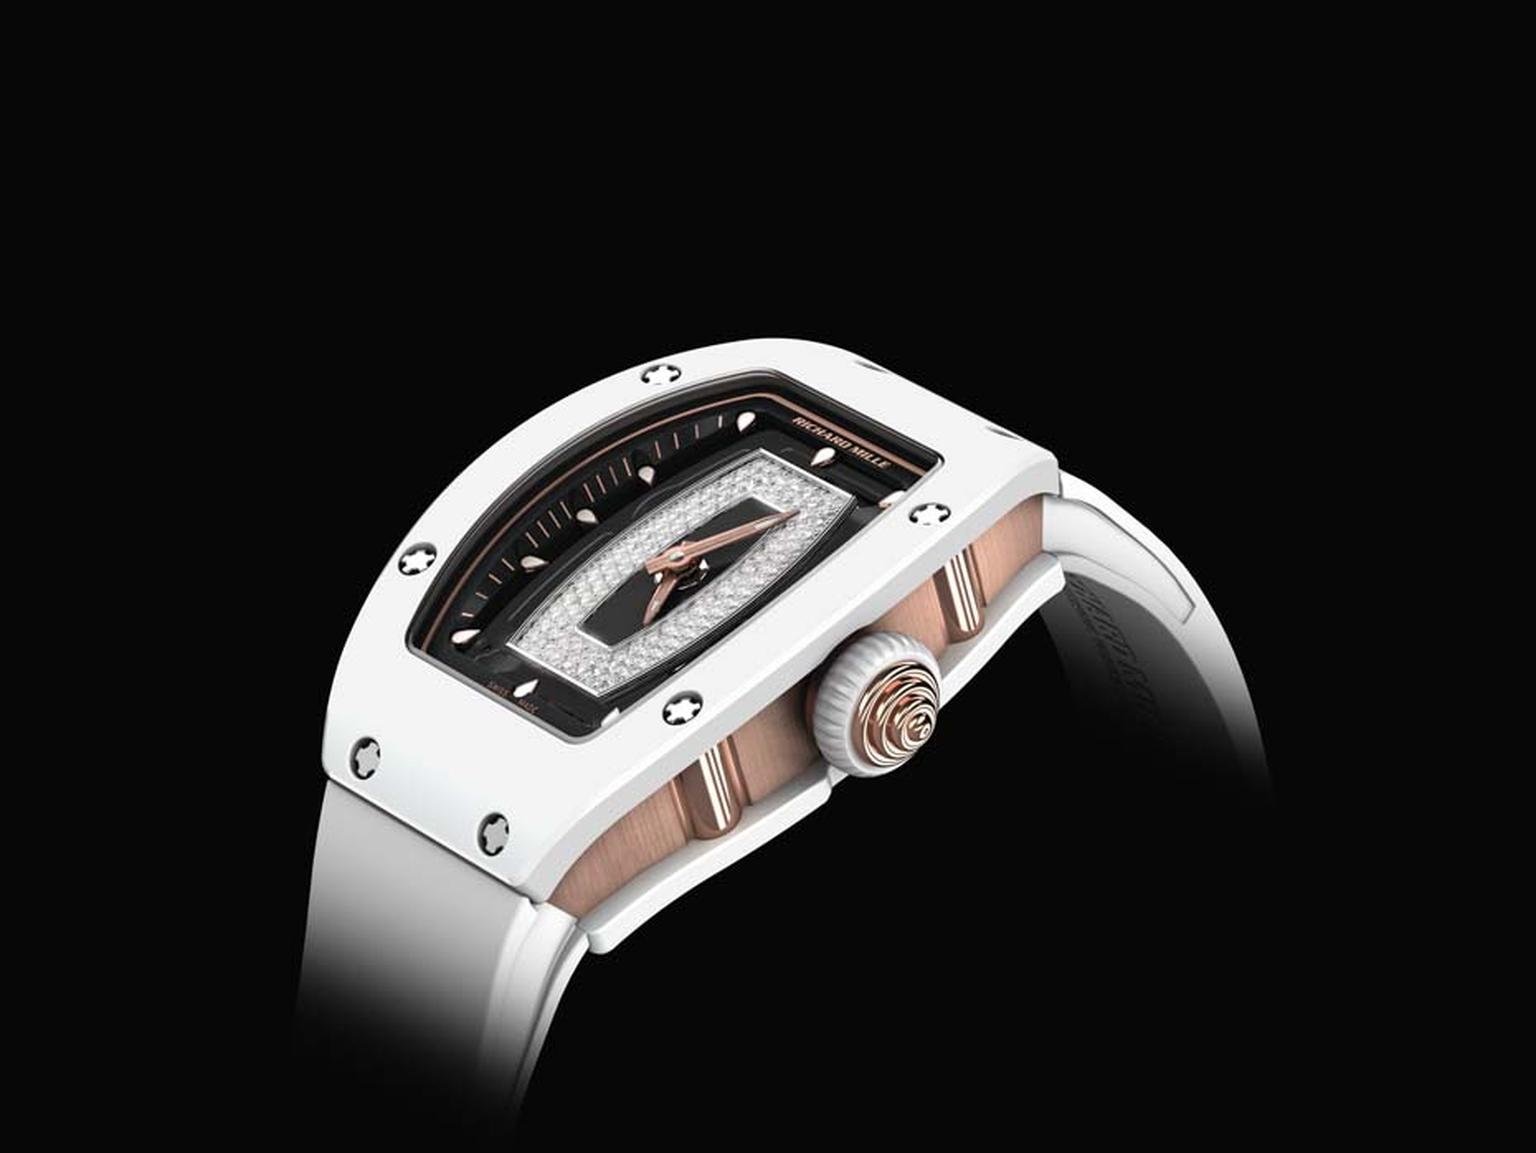 Richard Mille RM 07-01 ladies watch features a smooth white ceramic tonneau-shaped case resilient to everyday wear, tear and scratches.